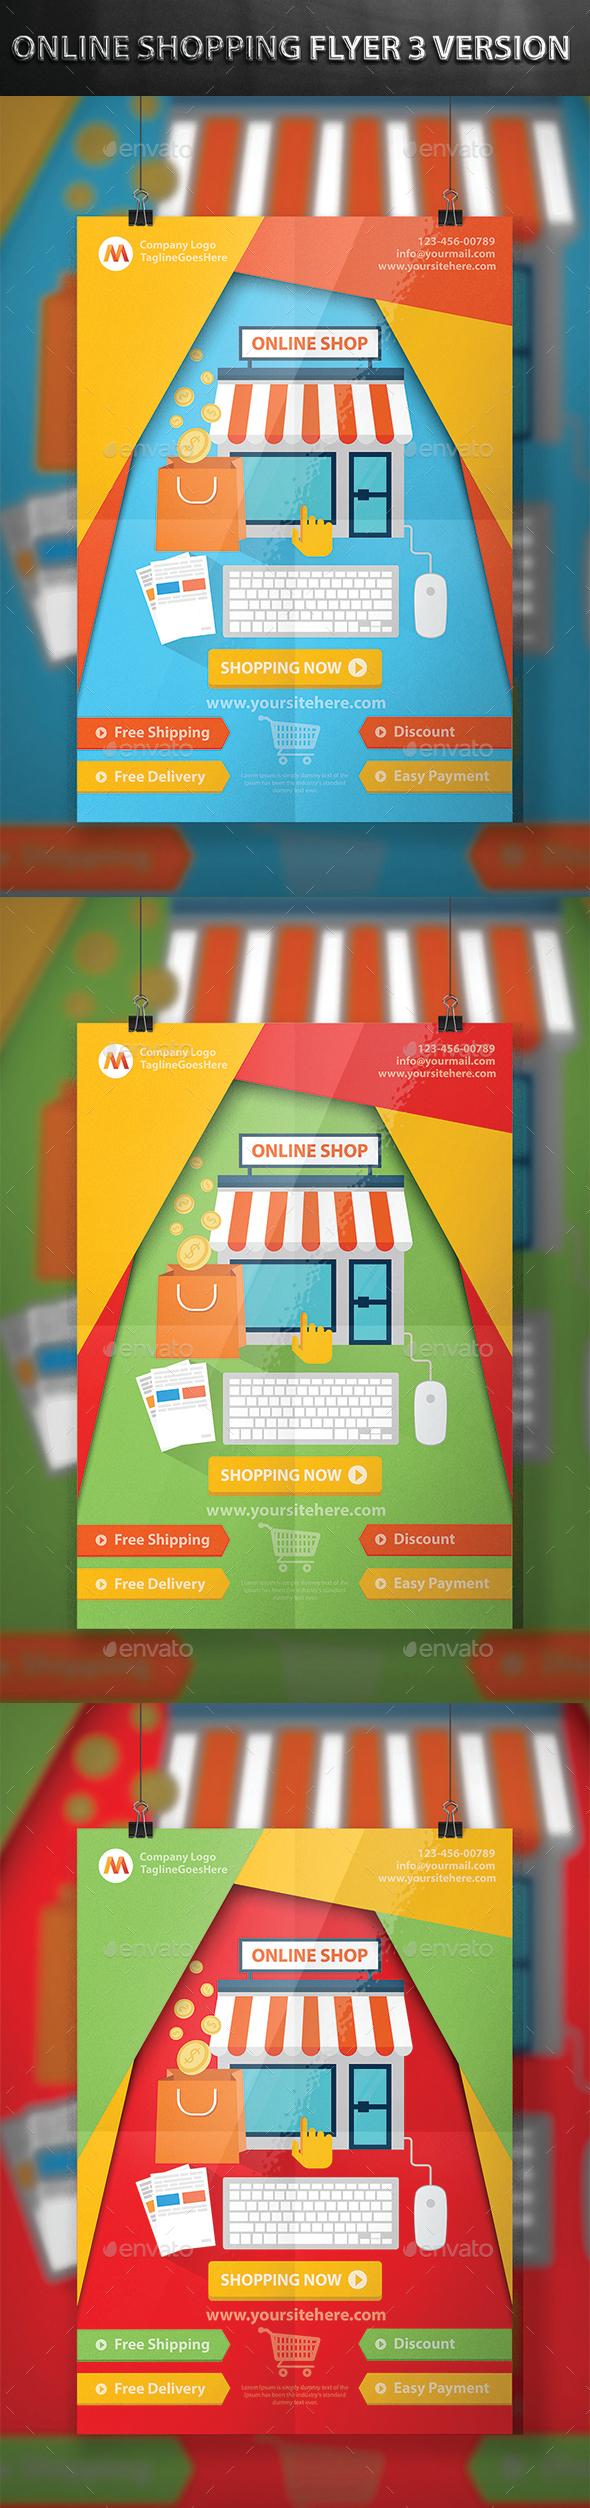 Online Shopping Flyer 3 Version - Flyers Print Templates